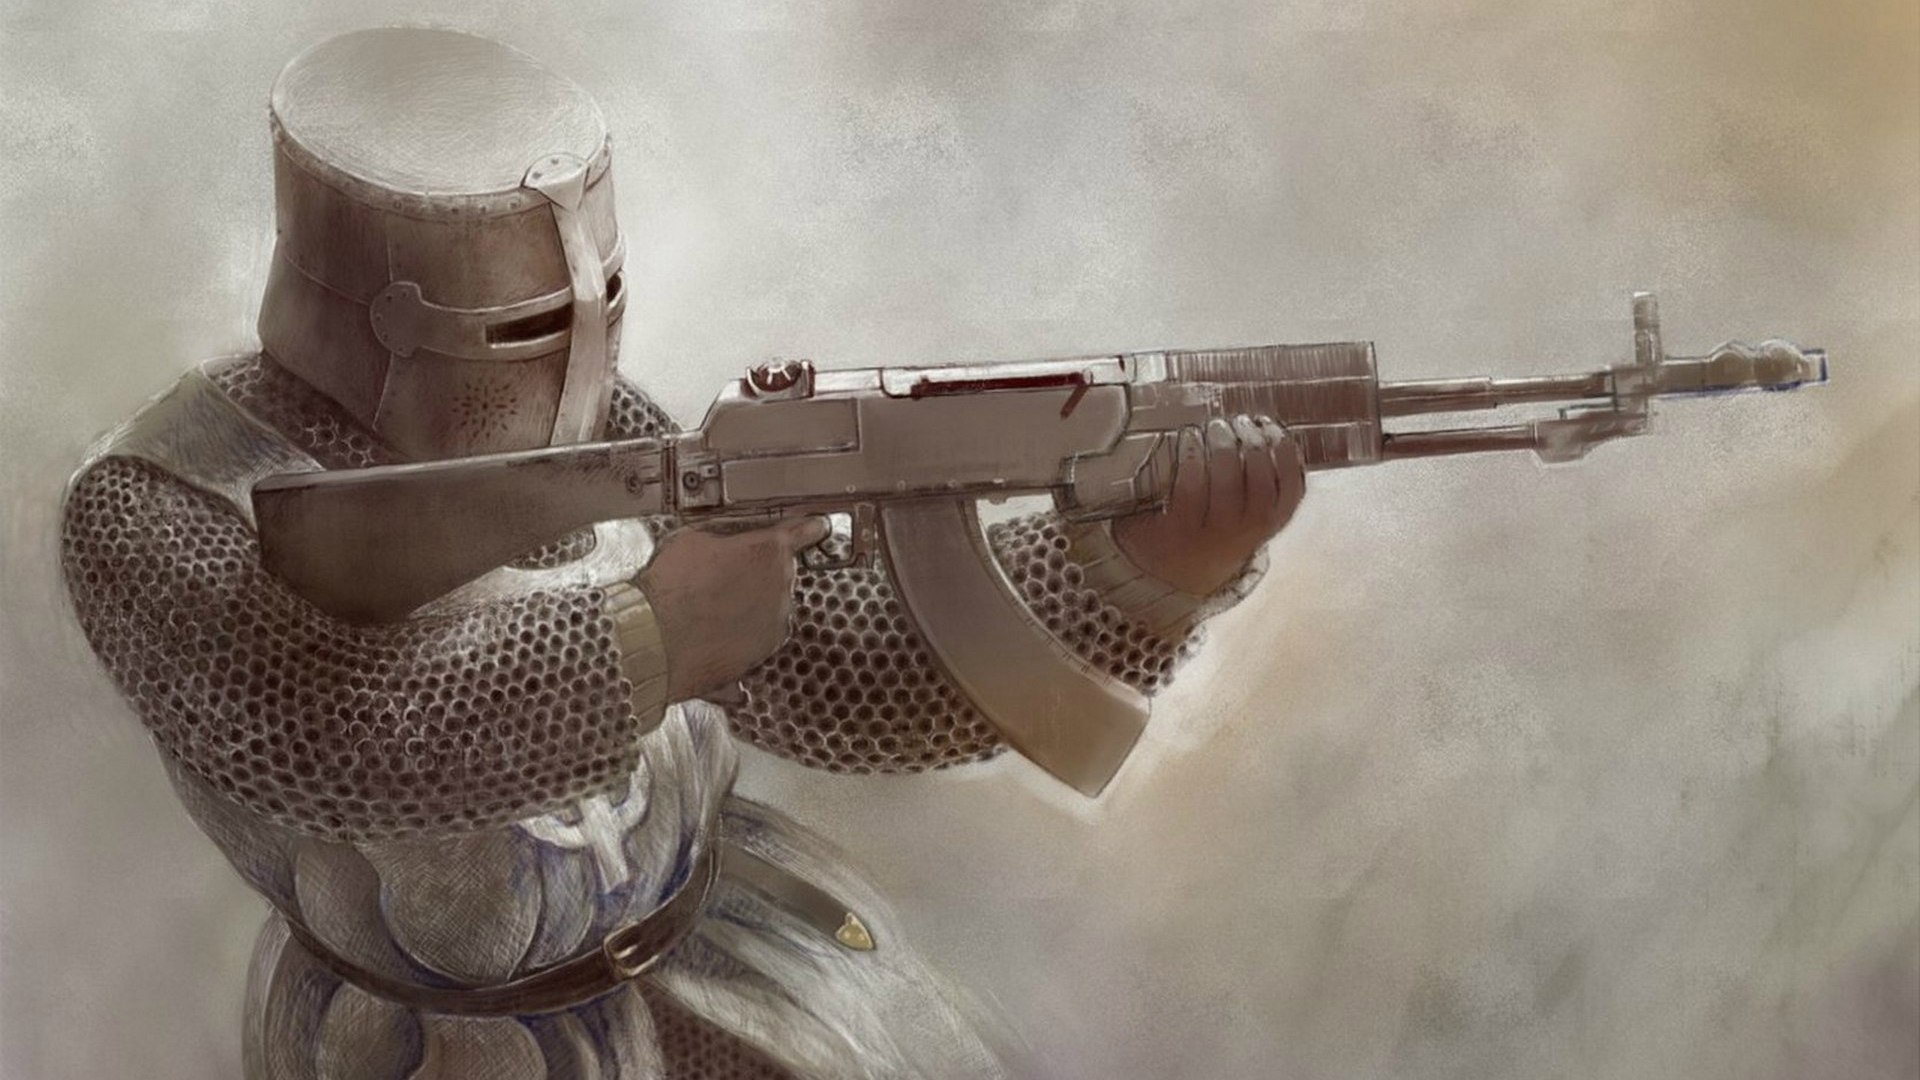 Fantasy_Knight_with_a_gun_in_his_hand_09